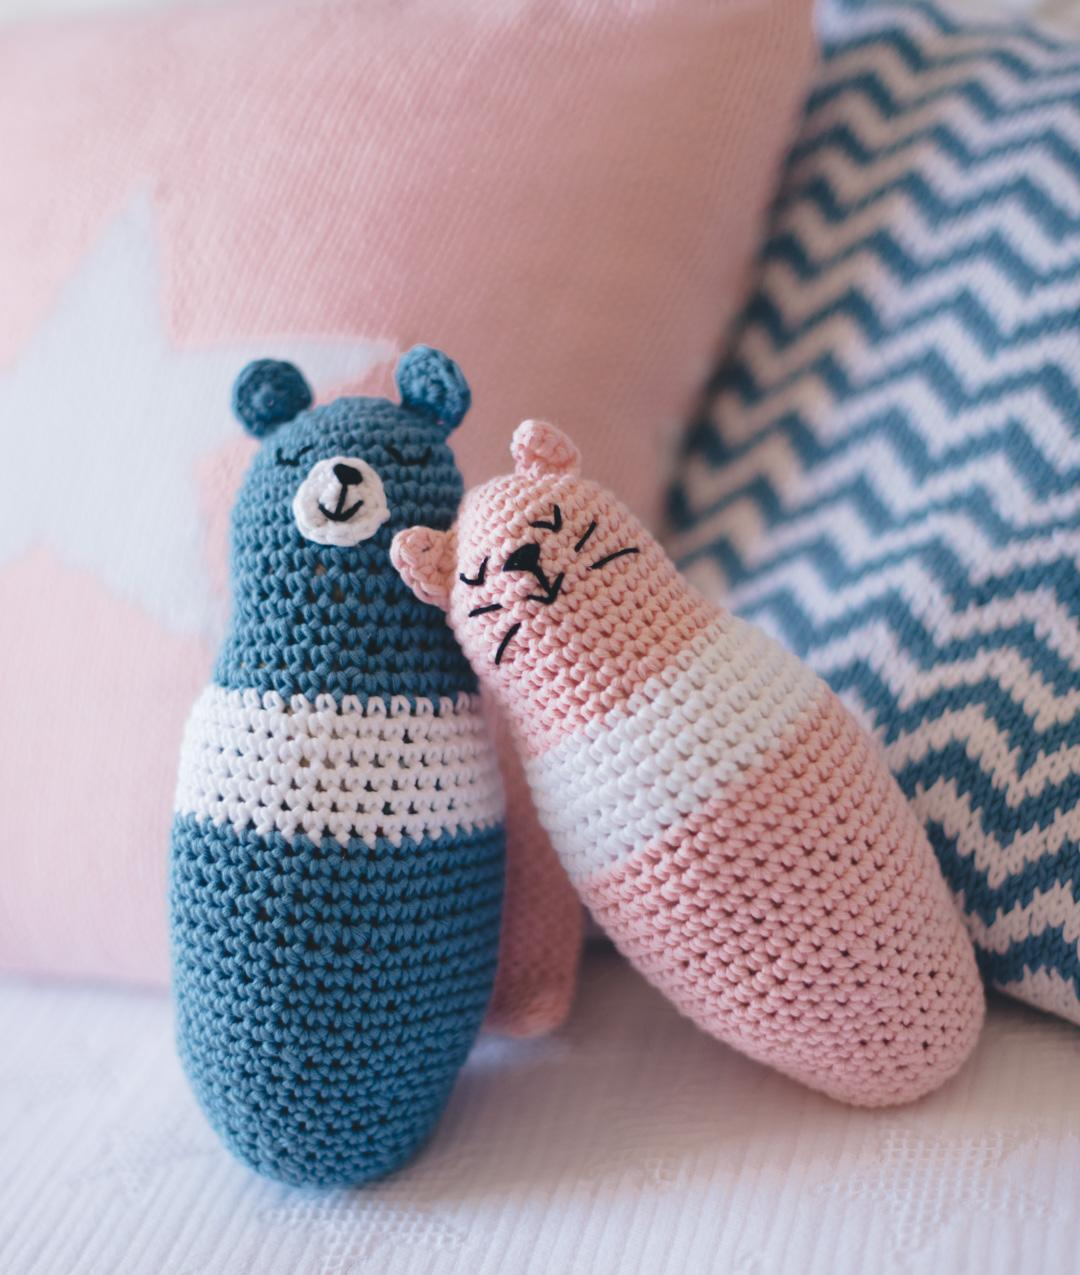 Casa - Cotone - TEDDY & KITTY AMIGURUMIS - 1